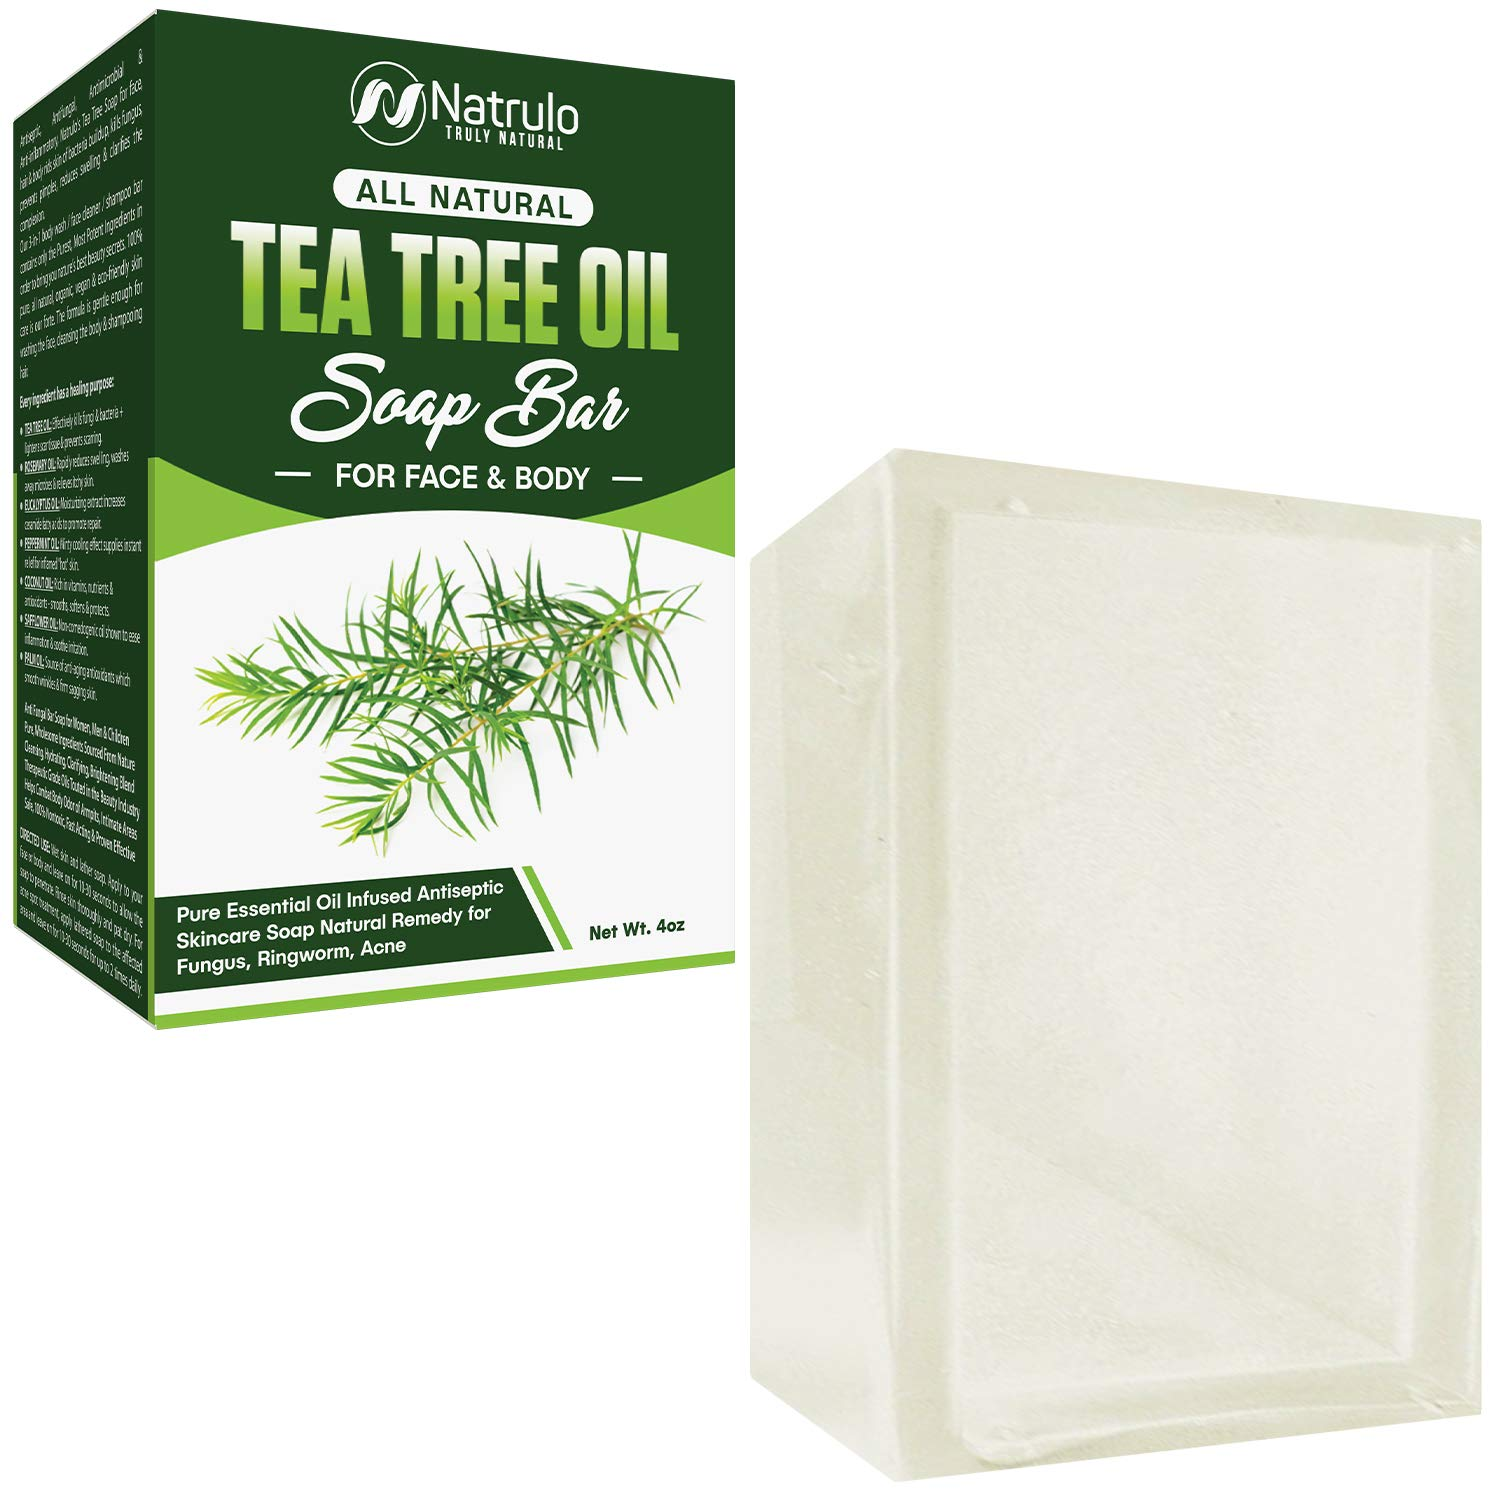 Tea Tree Oil Soap Bar for Face & Body, 4oz – Antifungal Antiseptic Natural Remedy Skin Cleanser – Pure Essential Oil Infused Skincare Cleansing Anti Fungal Bar Soap for Fungus, Ringworm, Acne